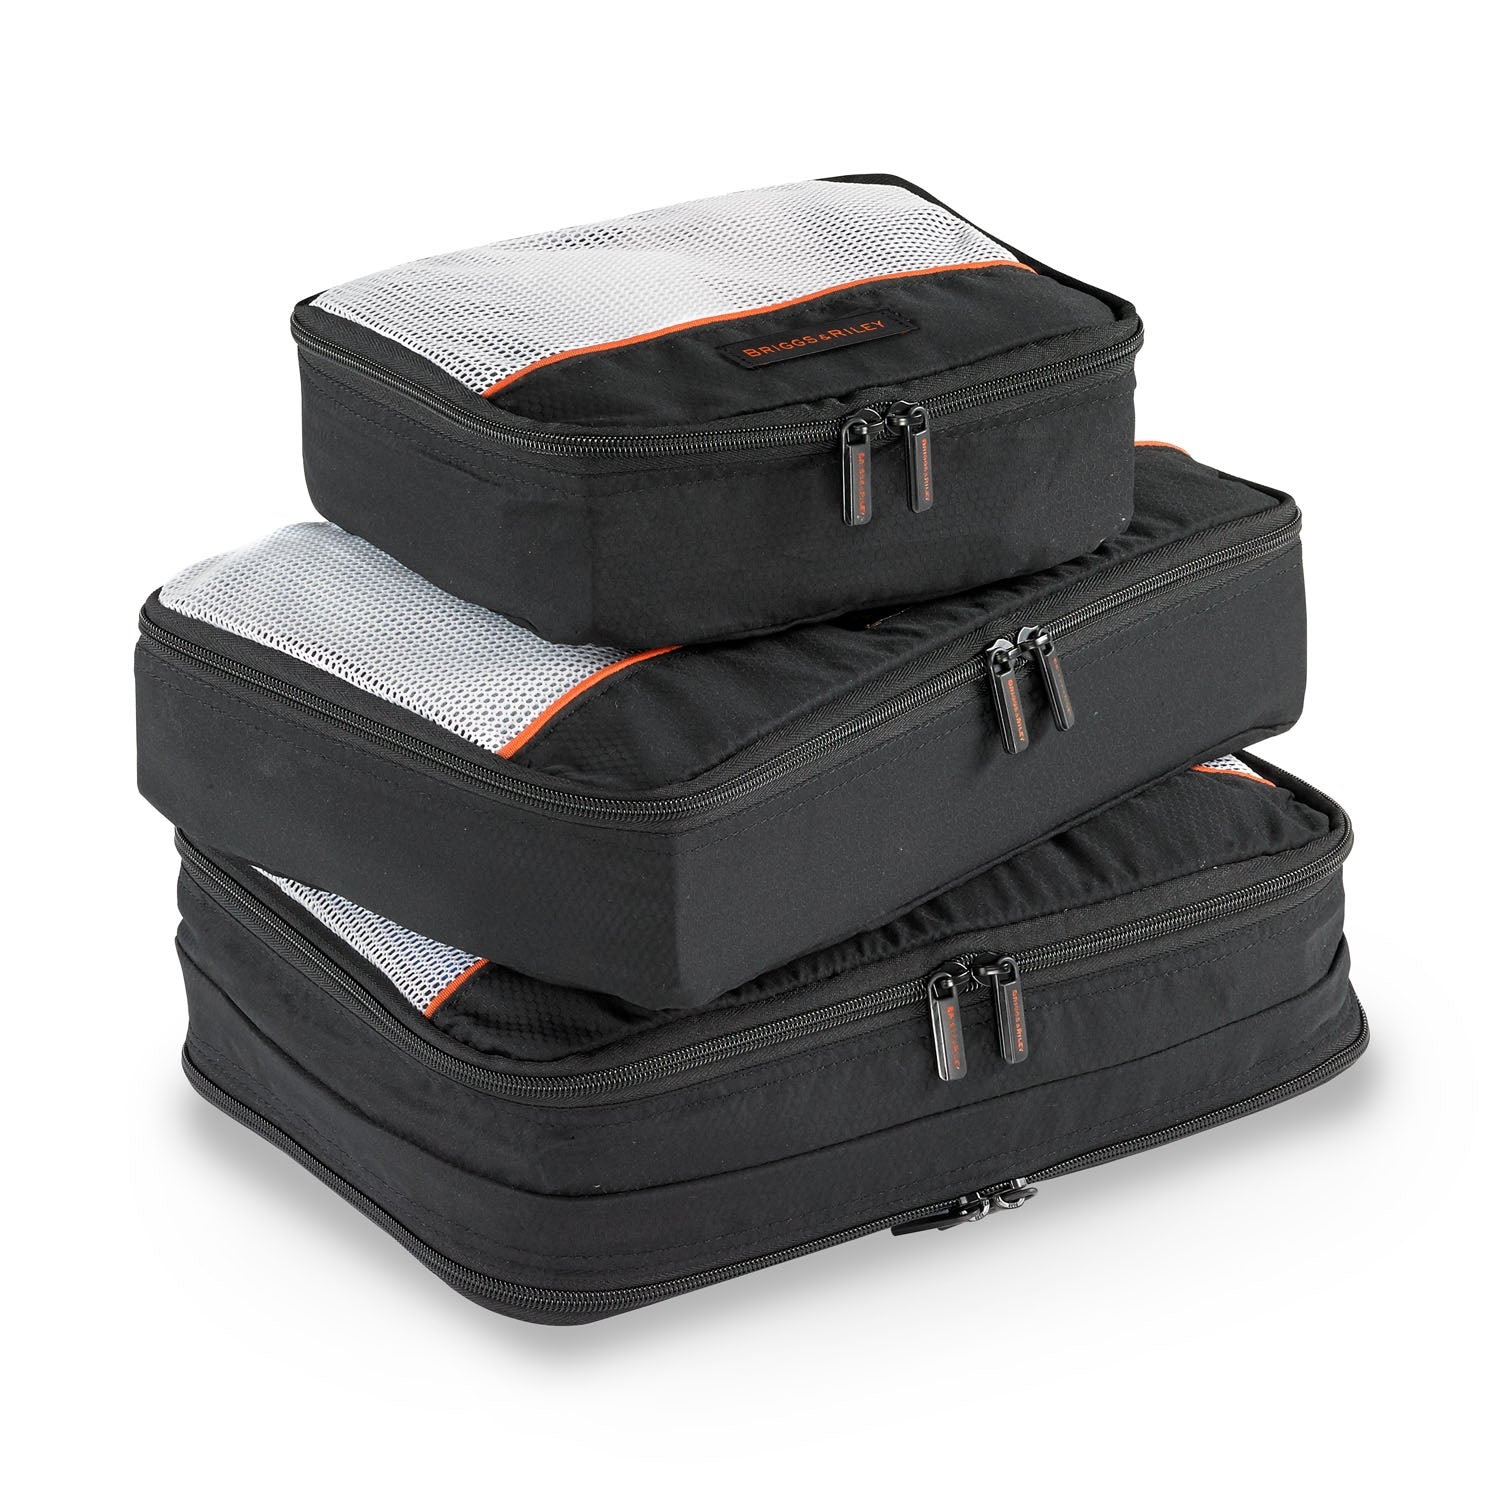 Small Luggage Packing Cubes (3-Piece Set)